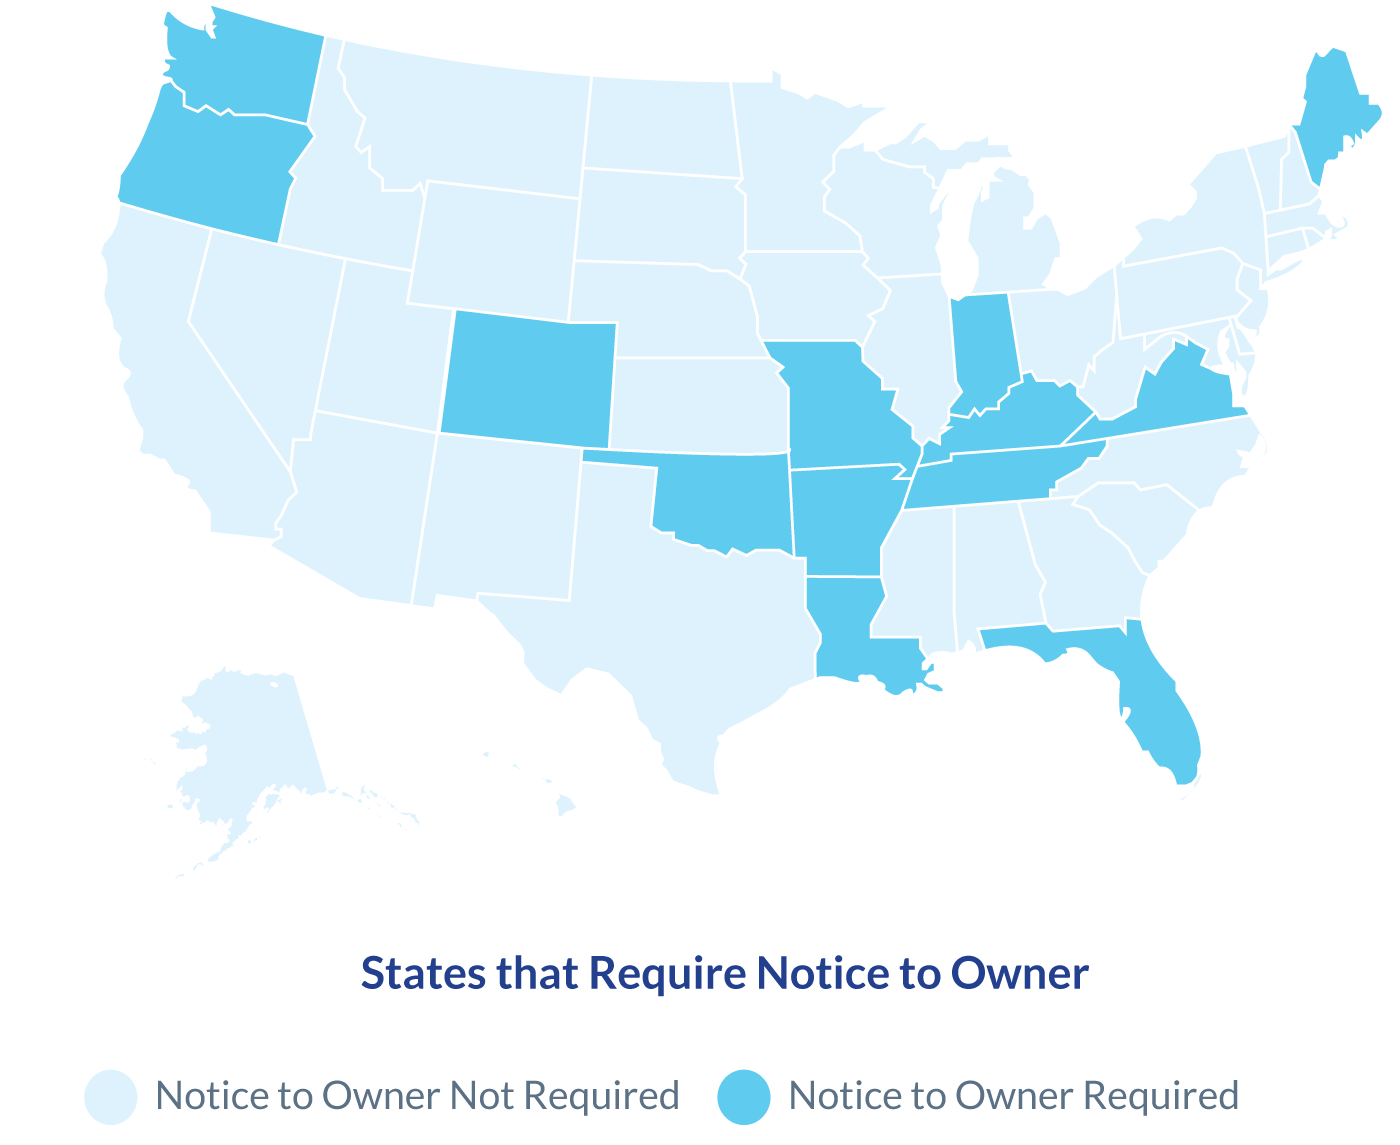 States that require Notice to Owver